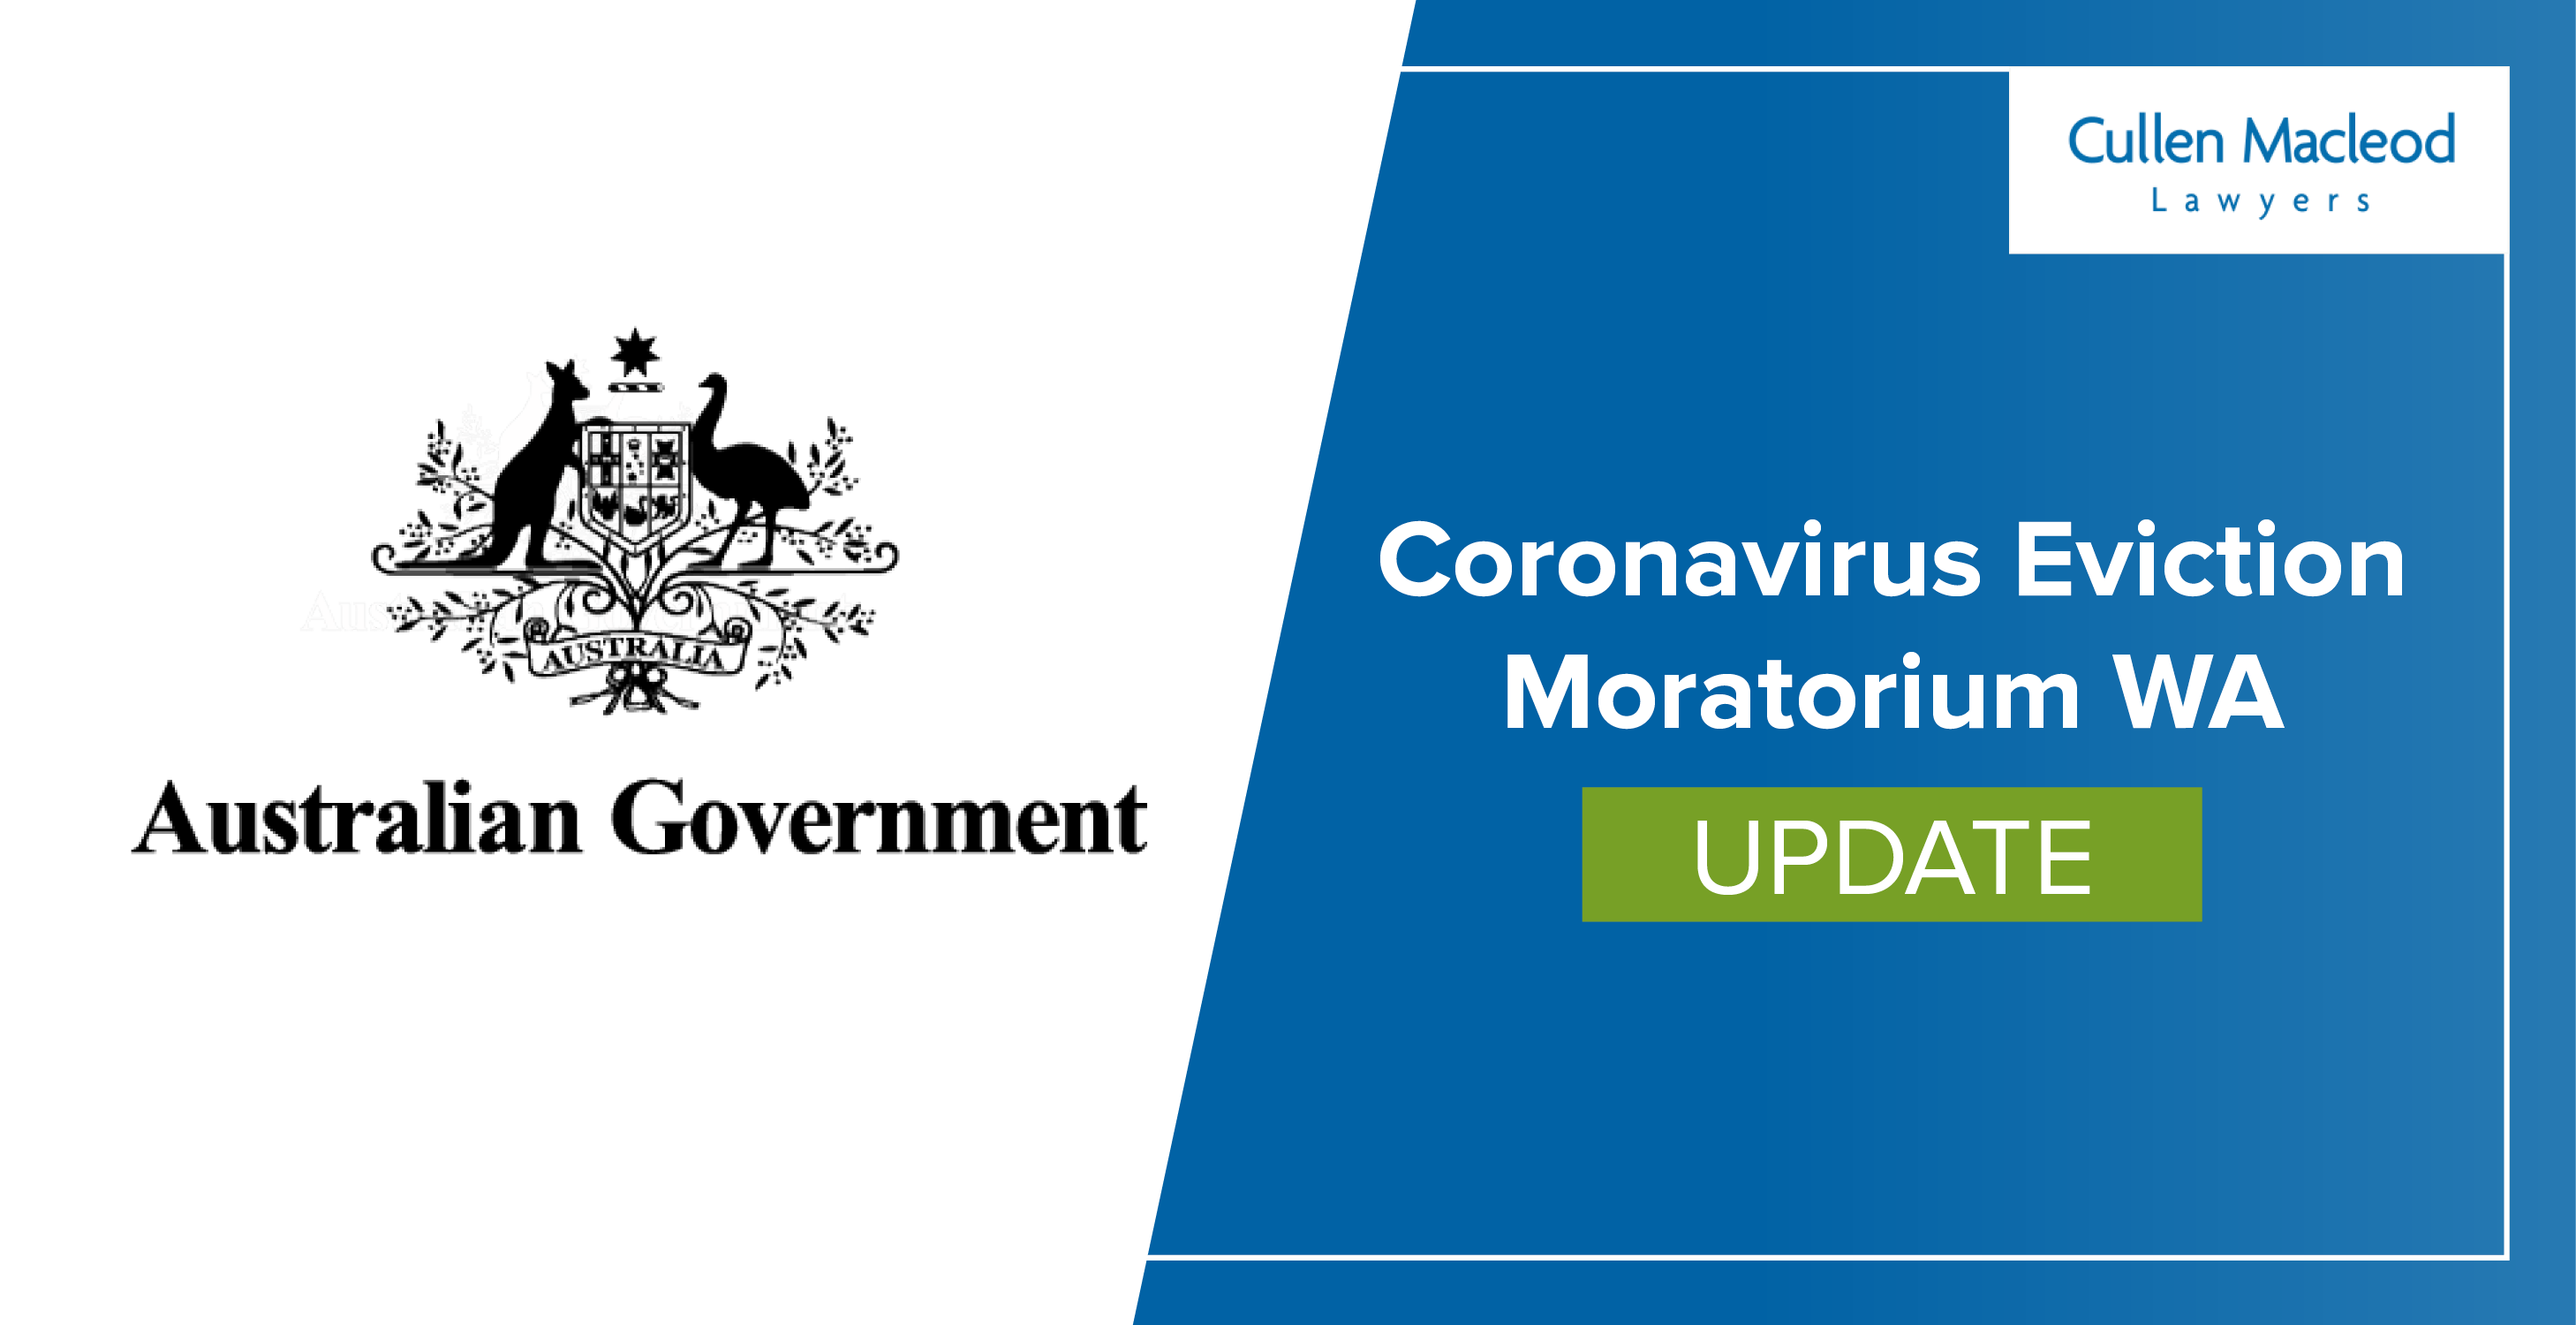 cullen-macleod-blog-feature-image-coronavirus-memoratorium-wa-update